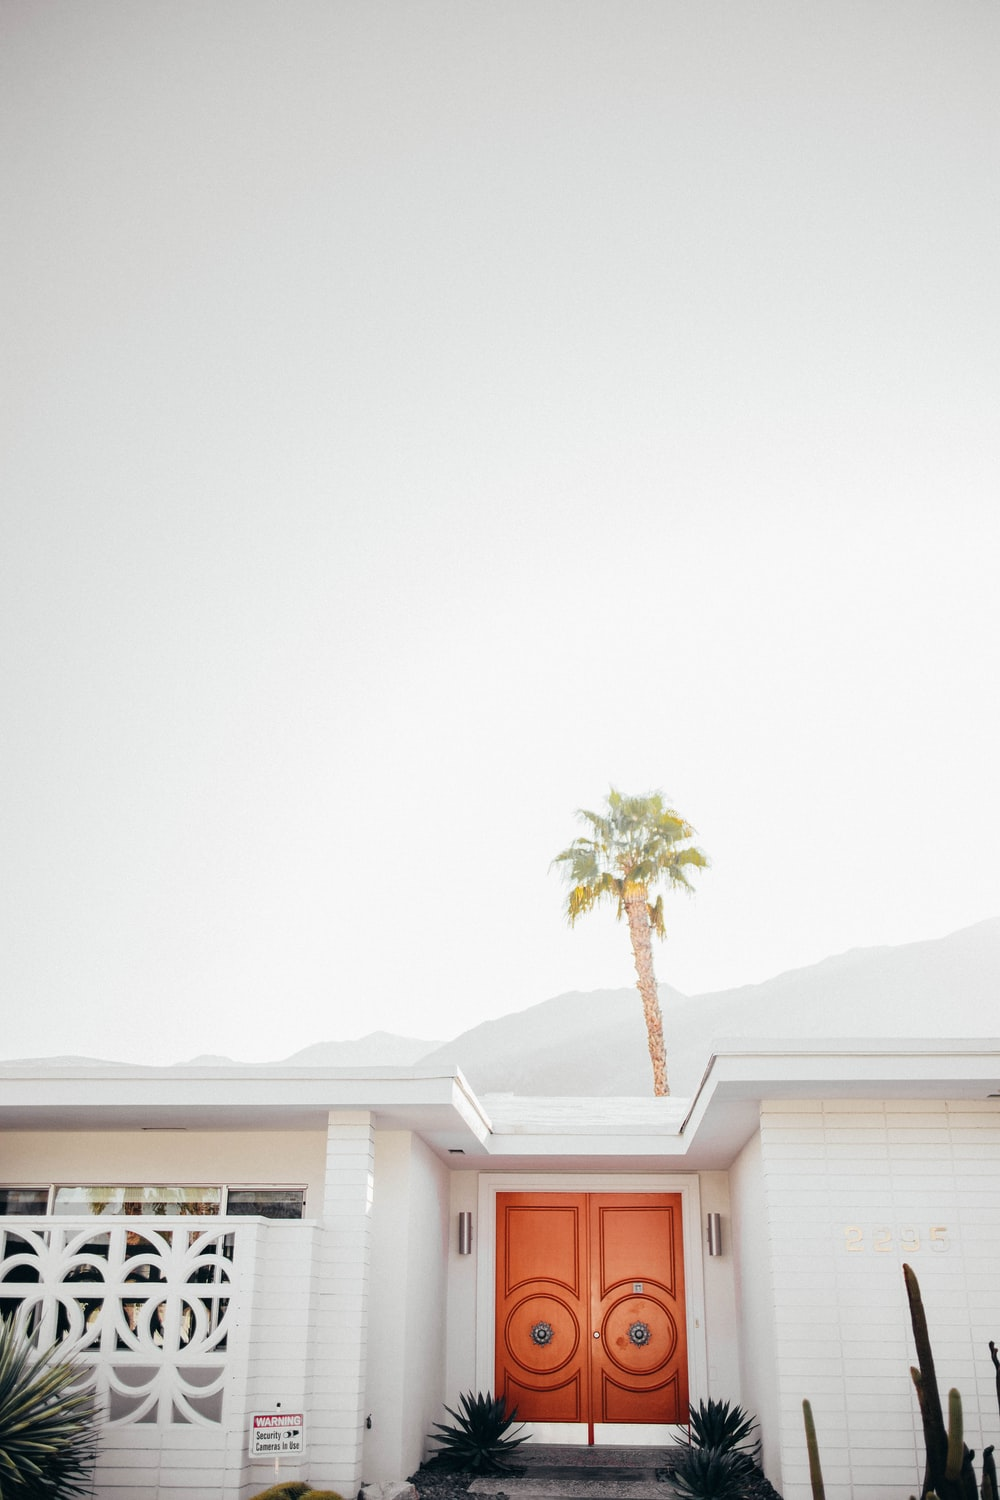 palm tree behind white house with brown door